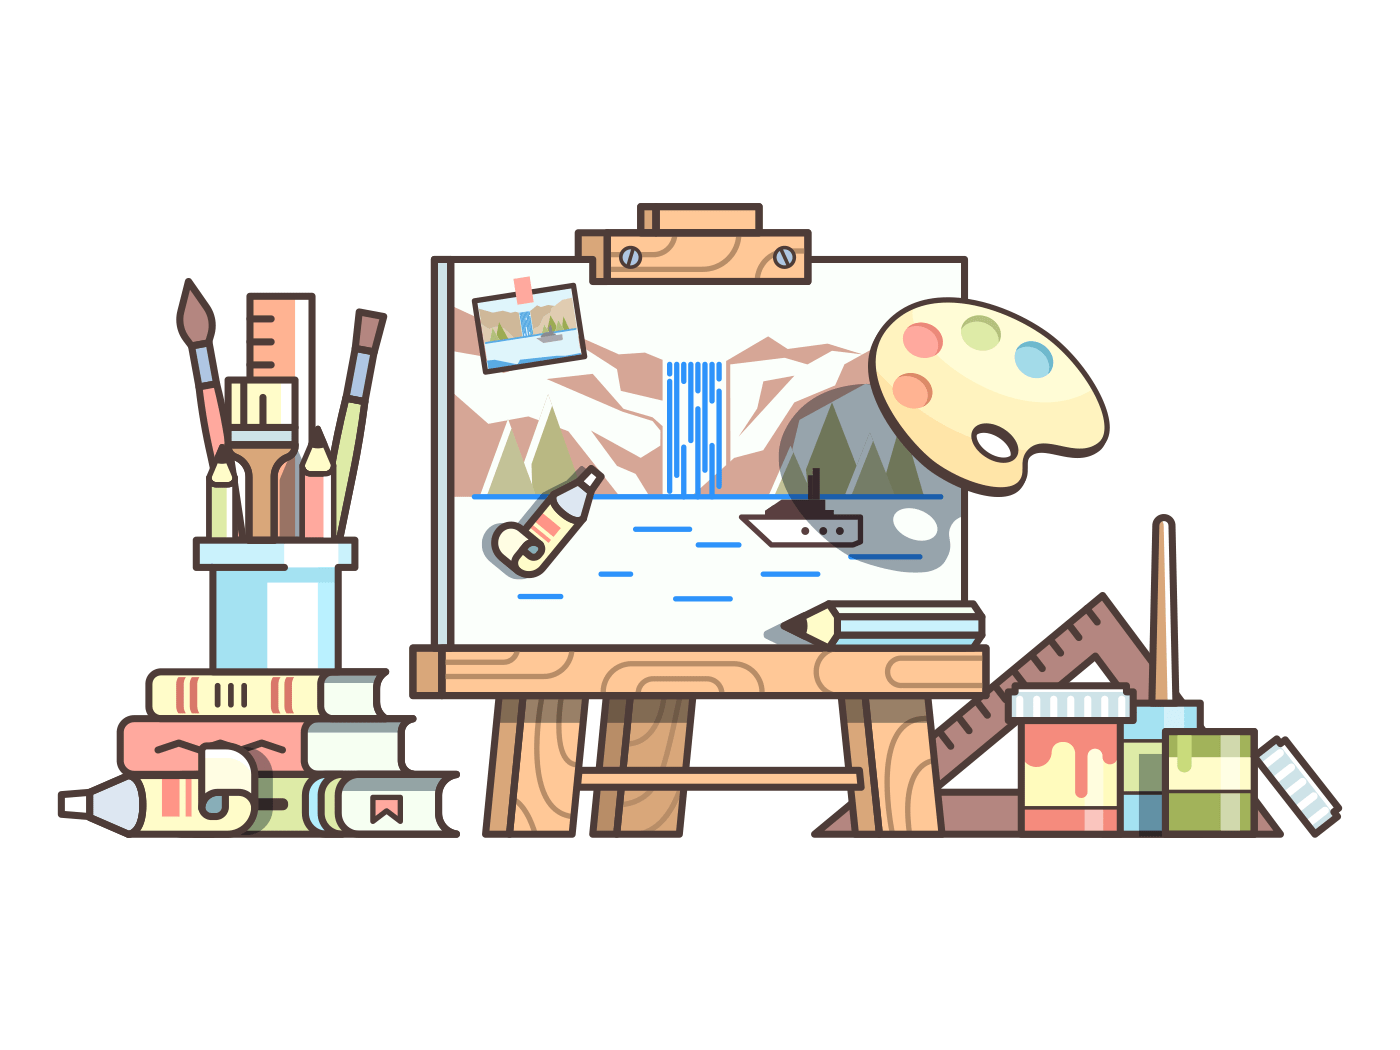 Easel and painting supplies line vector illustration